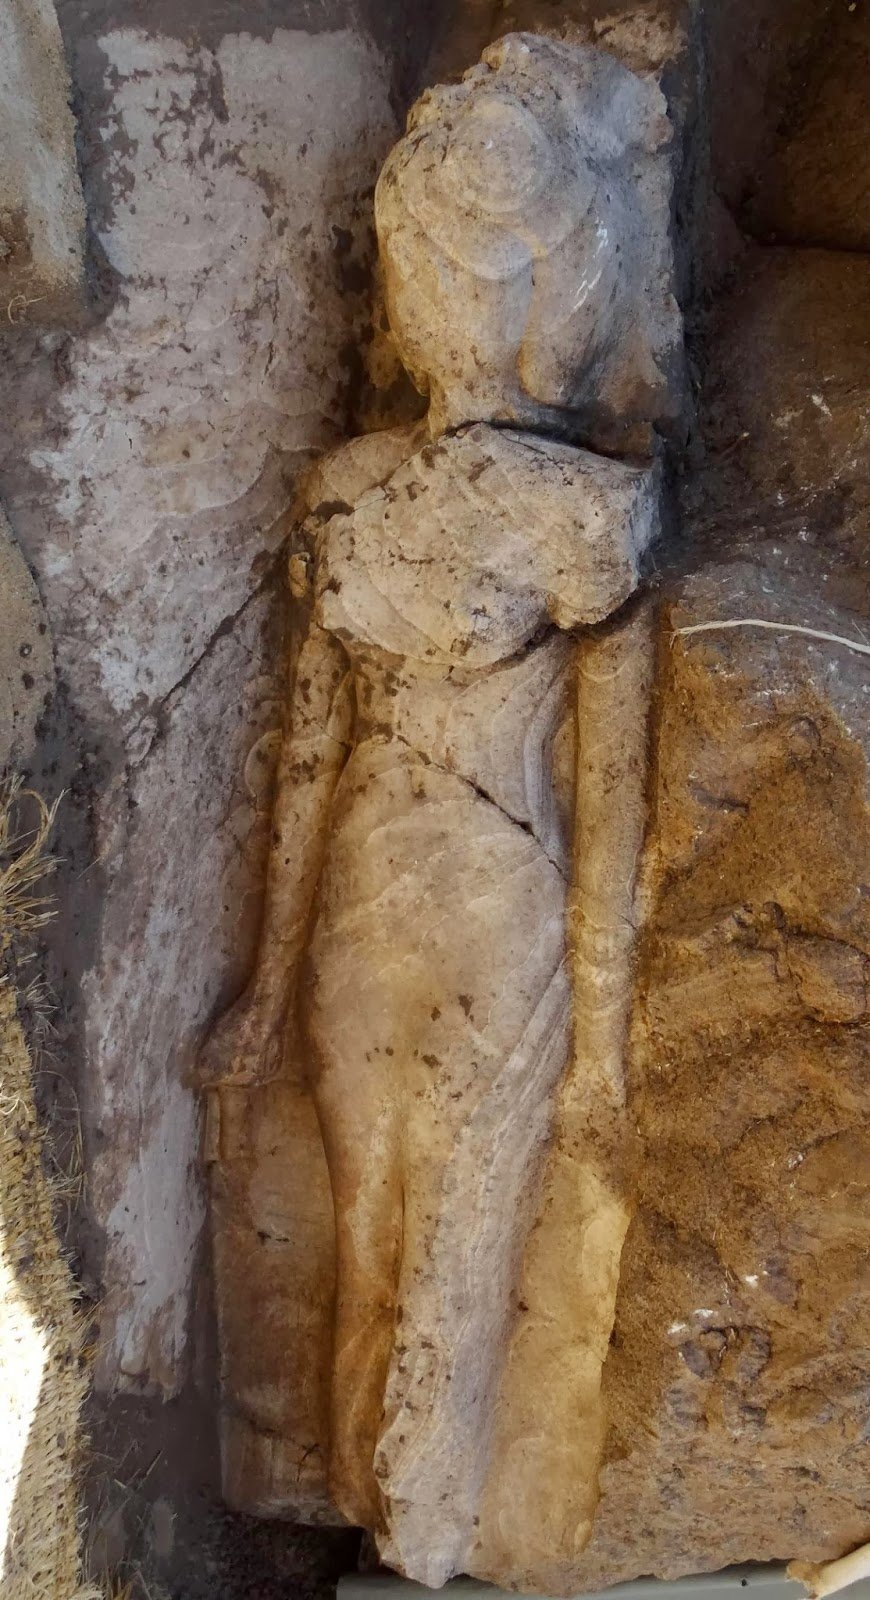 Remarkable Massive Statues Of Pharaoh Amenhotep III Discovered In Luxor - Ancient Egypt Reveals More Of Its Secrets Isetamehotepsdaughter001